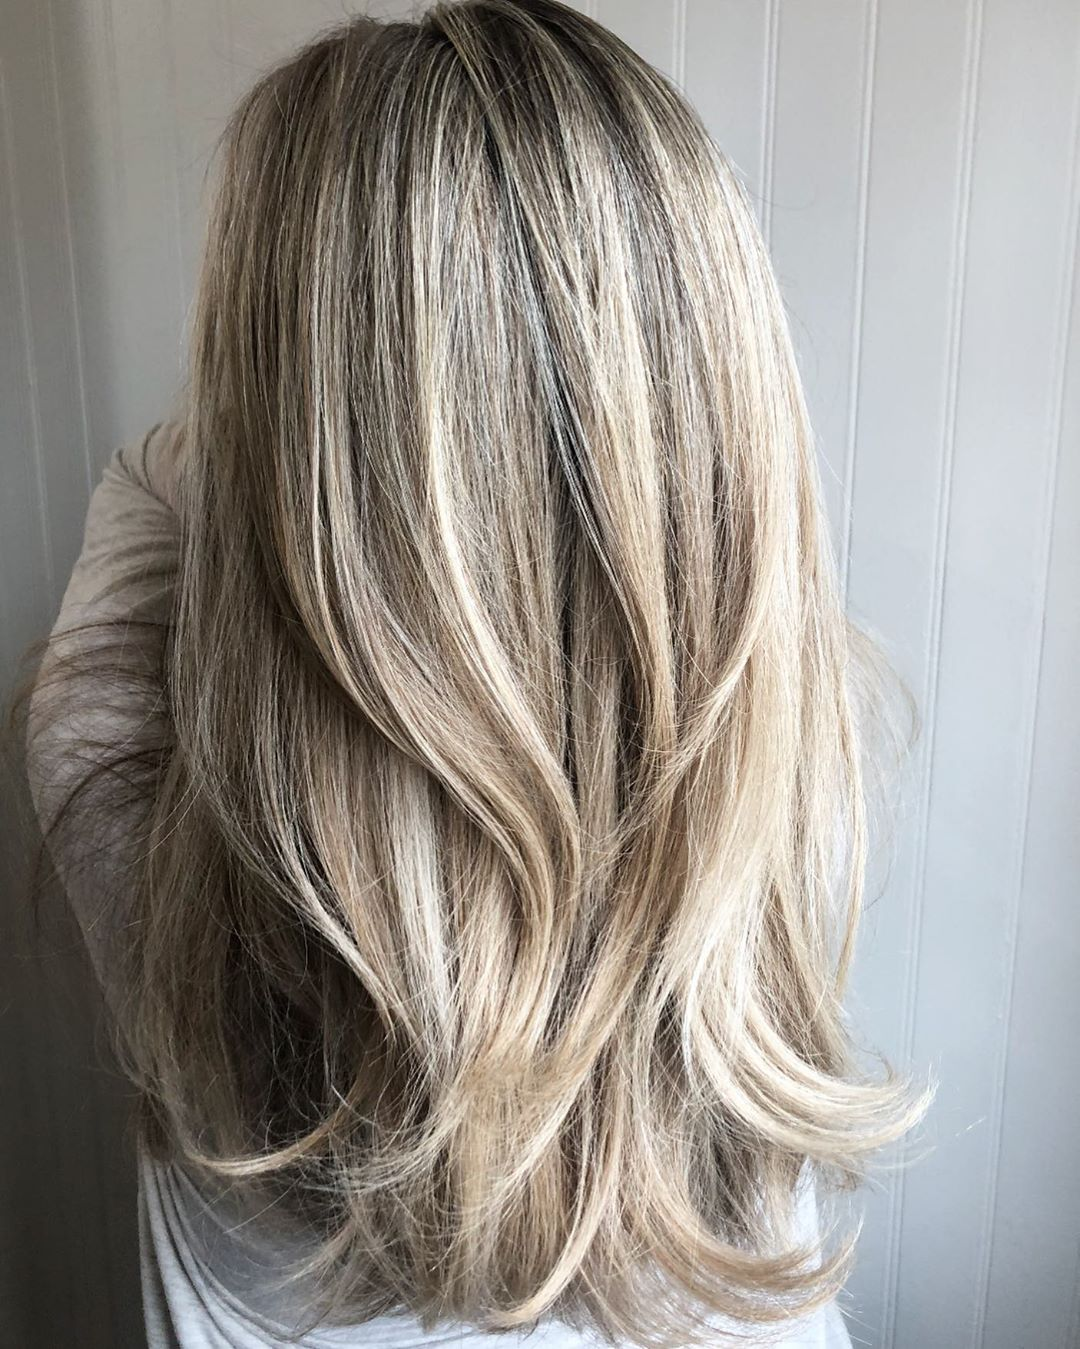 Short Layers for Long Hair